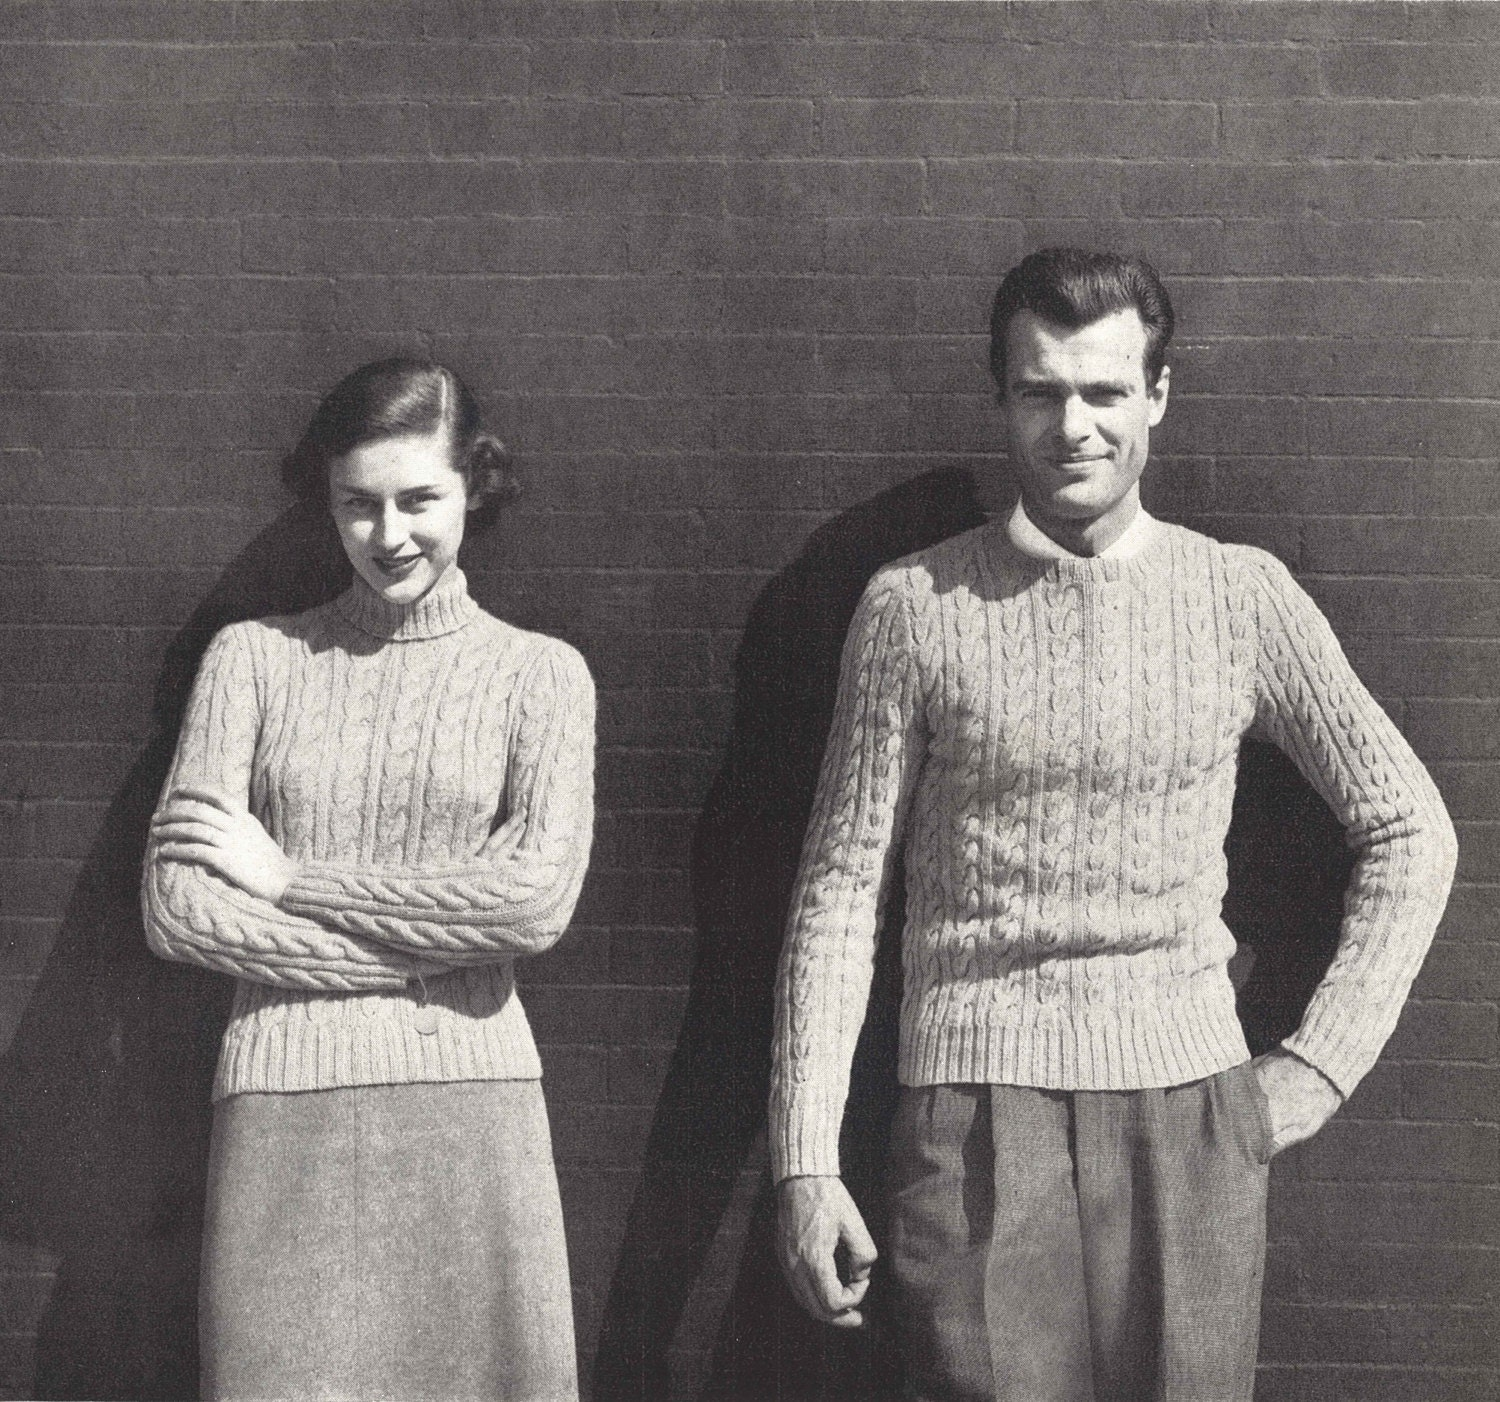 His & Hers Cables 1940s Knitting Knit Turtleneck Tennis